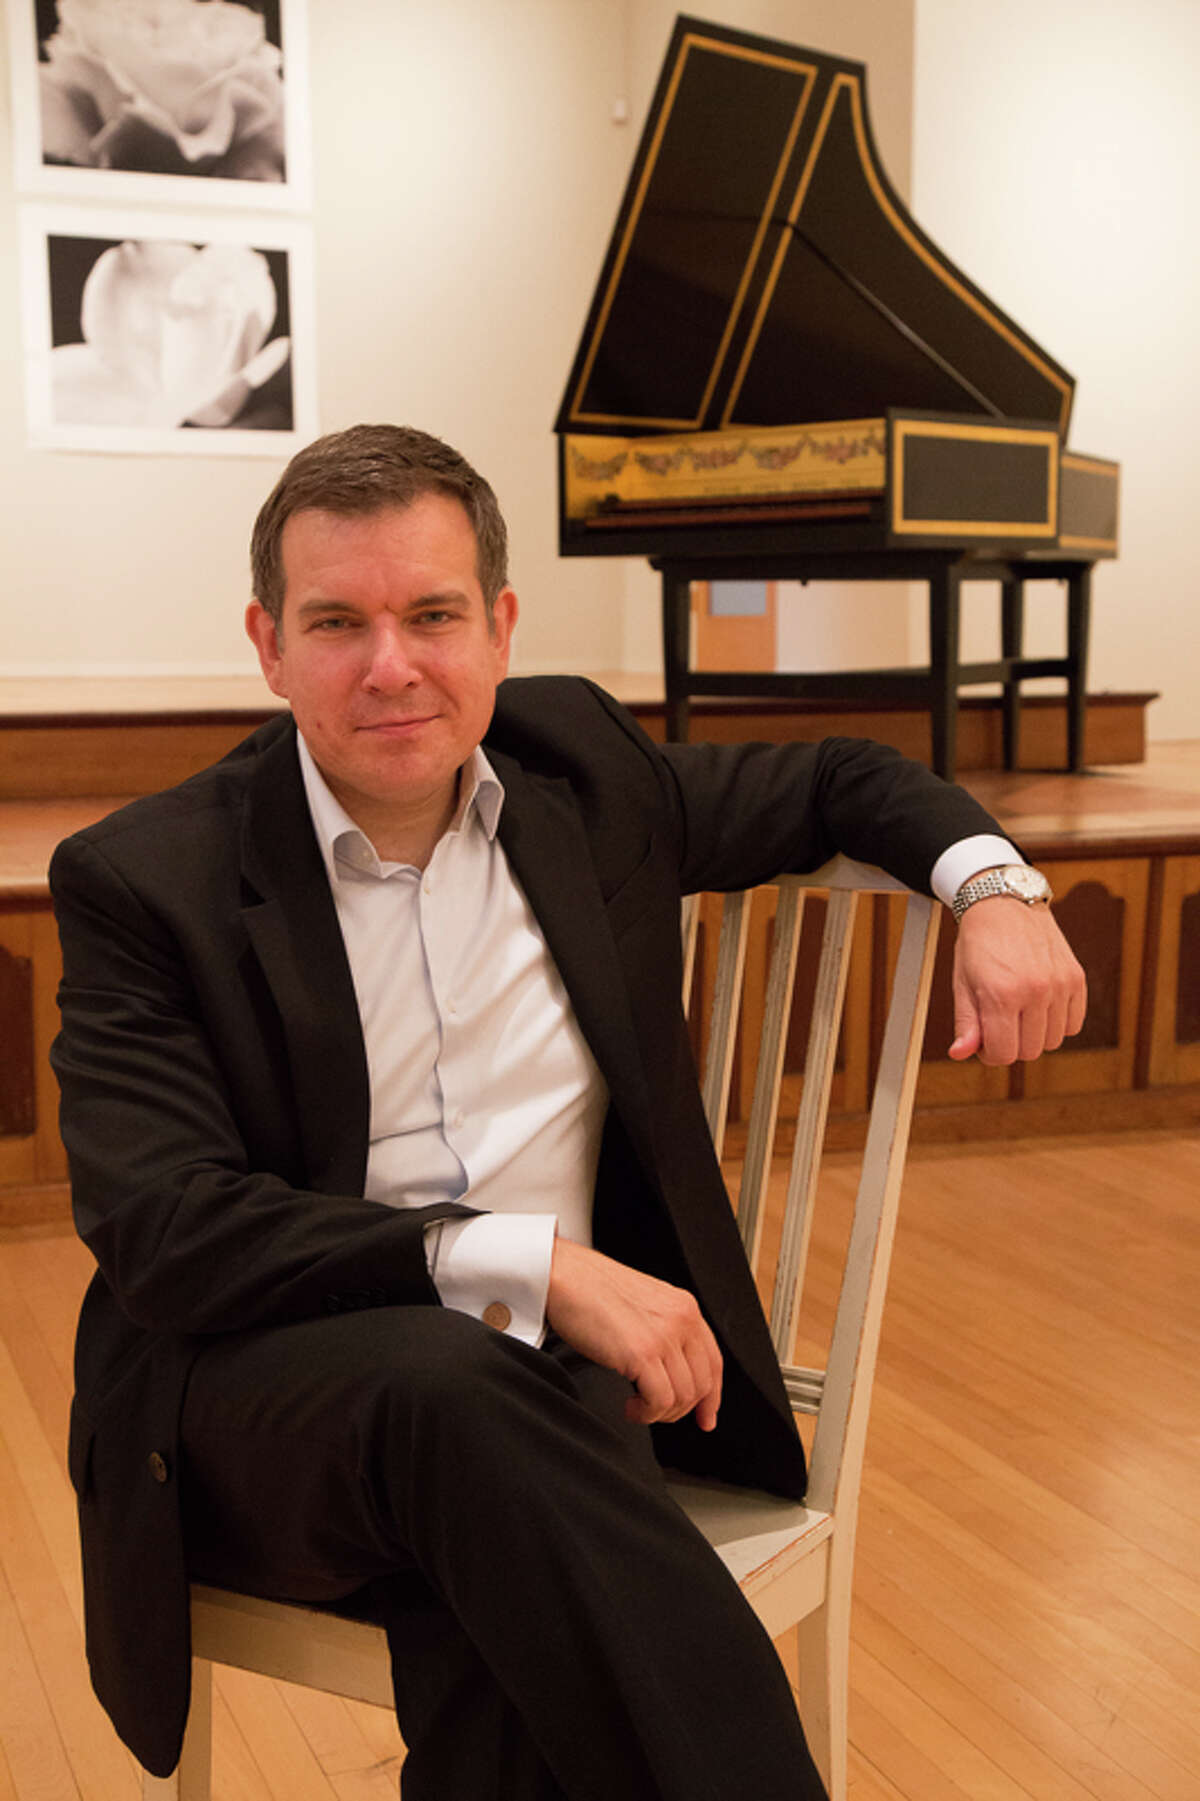 Paolo Bordignon will perform an all-Bach concert on the harpsichord at St. Paul's United Methodist Church on Tuesday, Sept. 29.